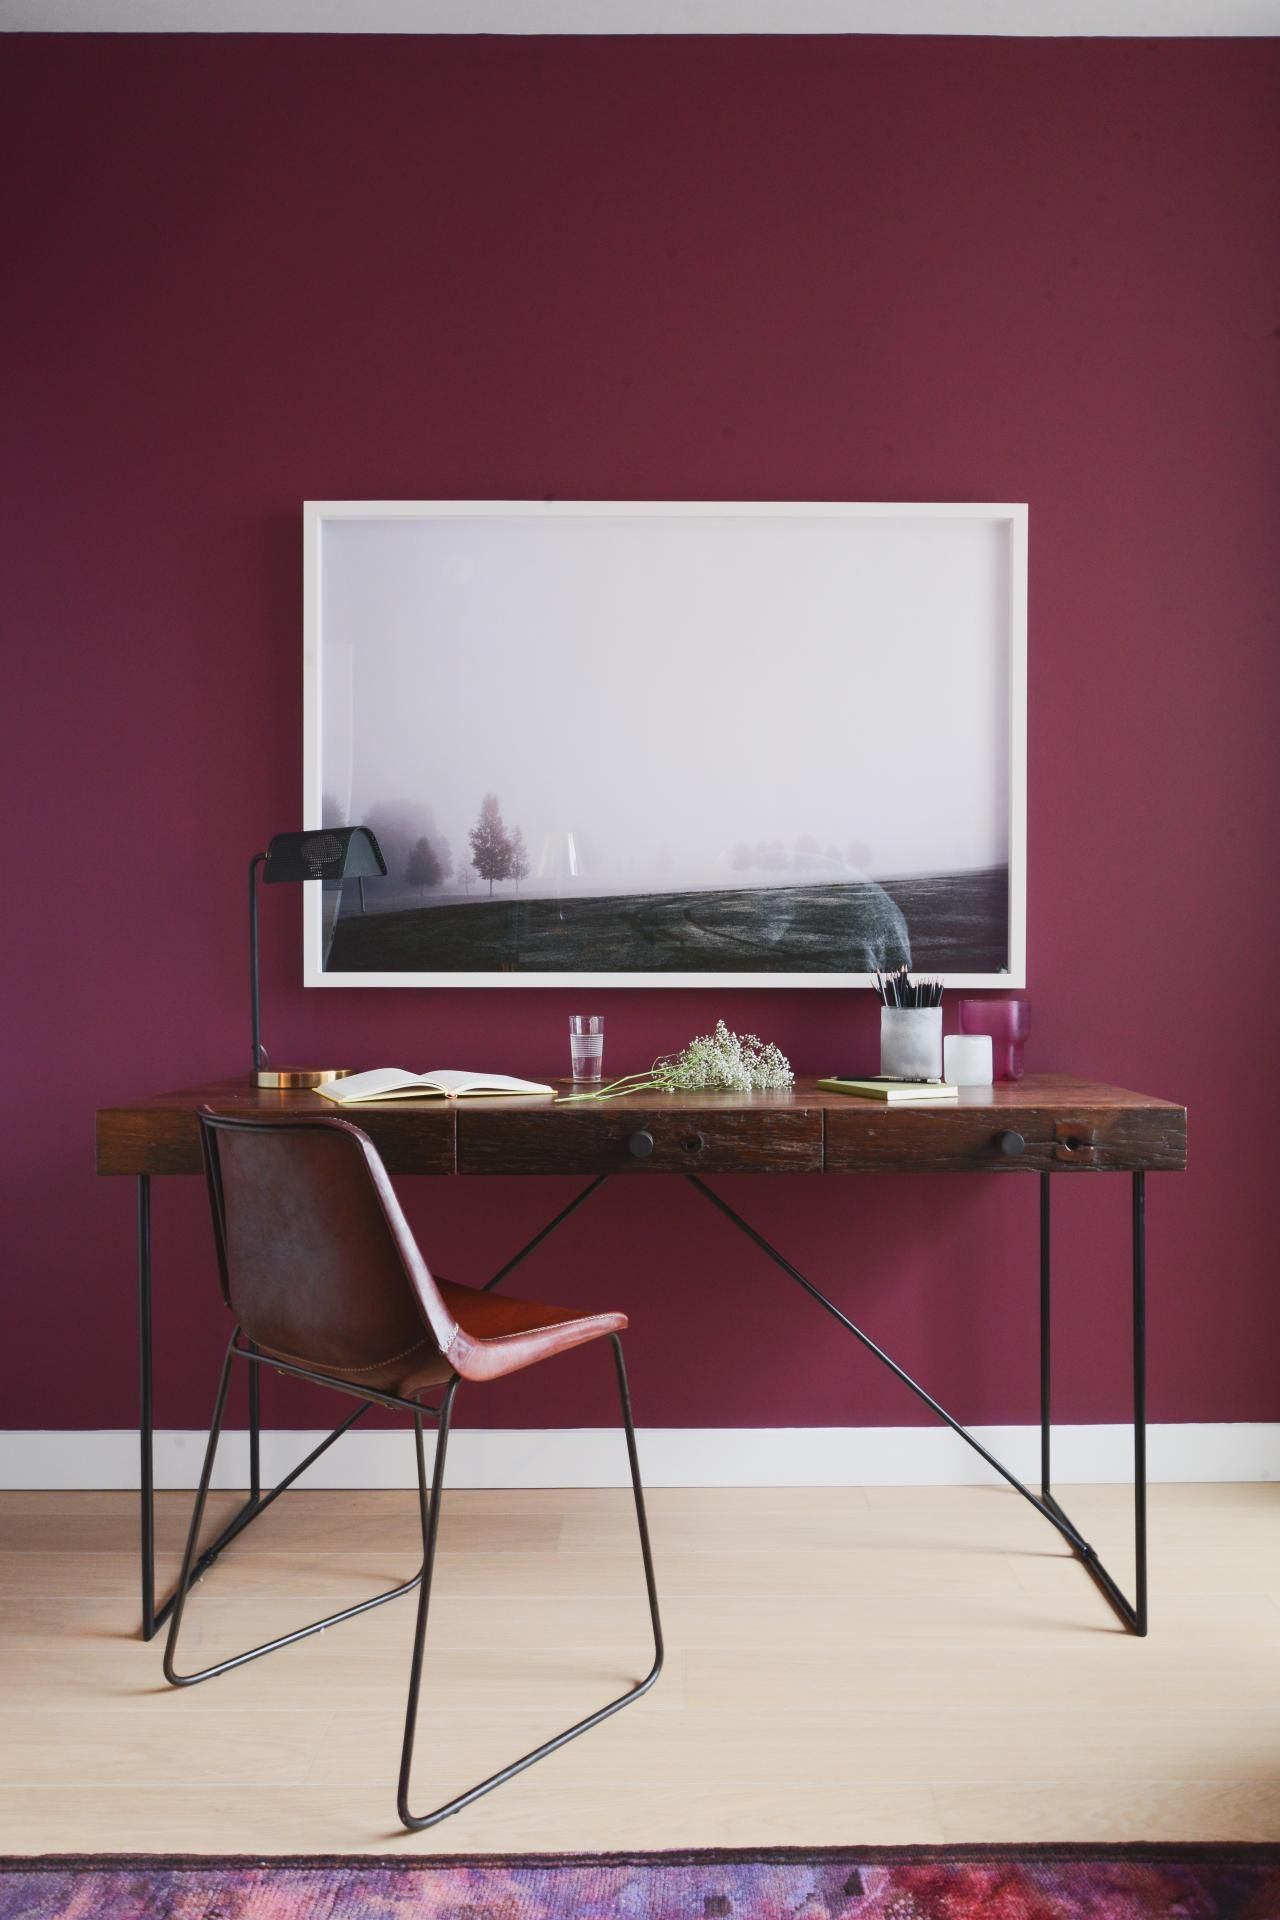 du bordeaux dans ma d co loriana bordeaux pinterest le bordeaux bordeaux et bureau. Black Bedroom Furniture Sets. Home Design Ideas